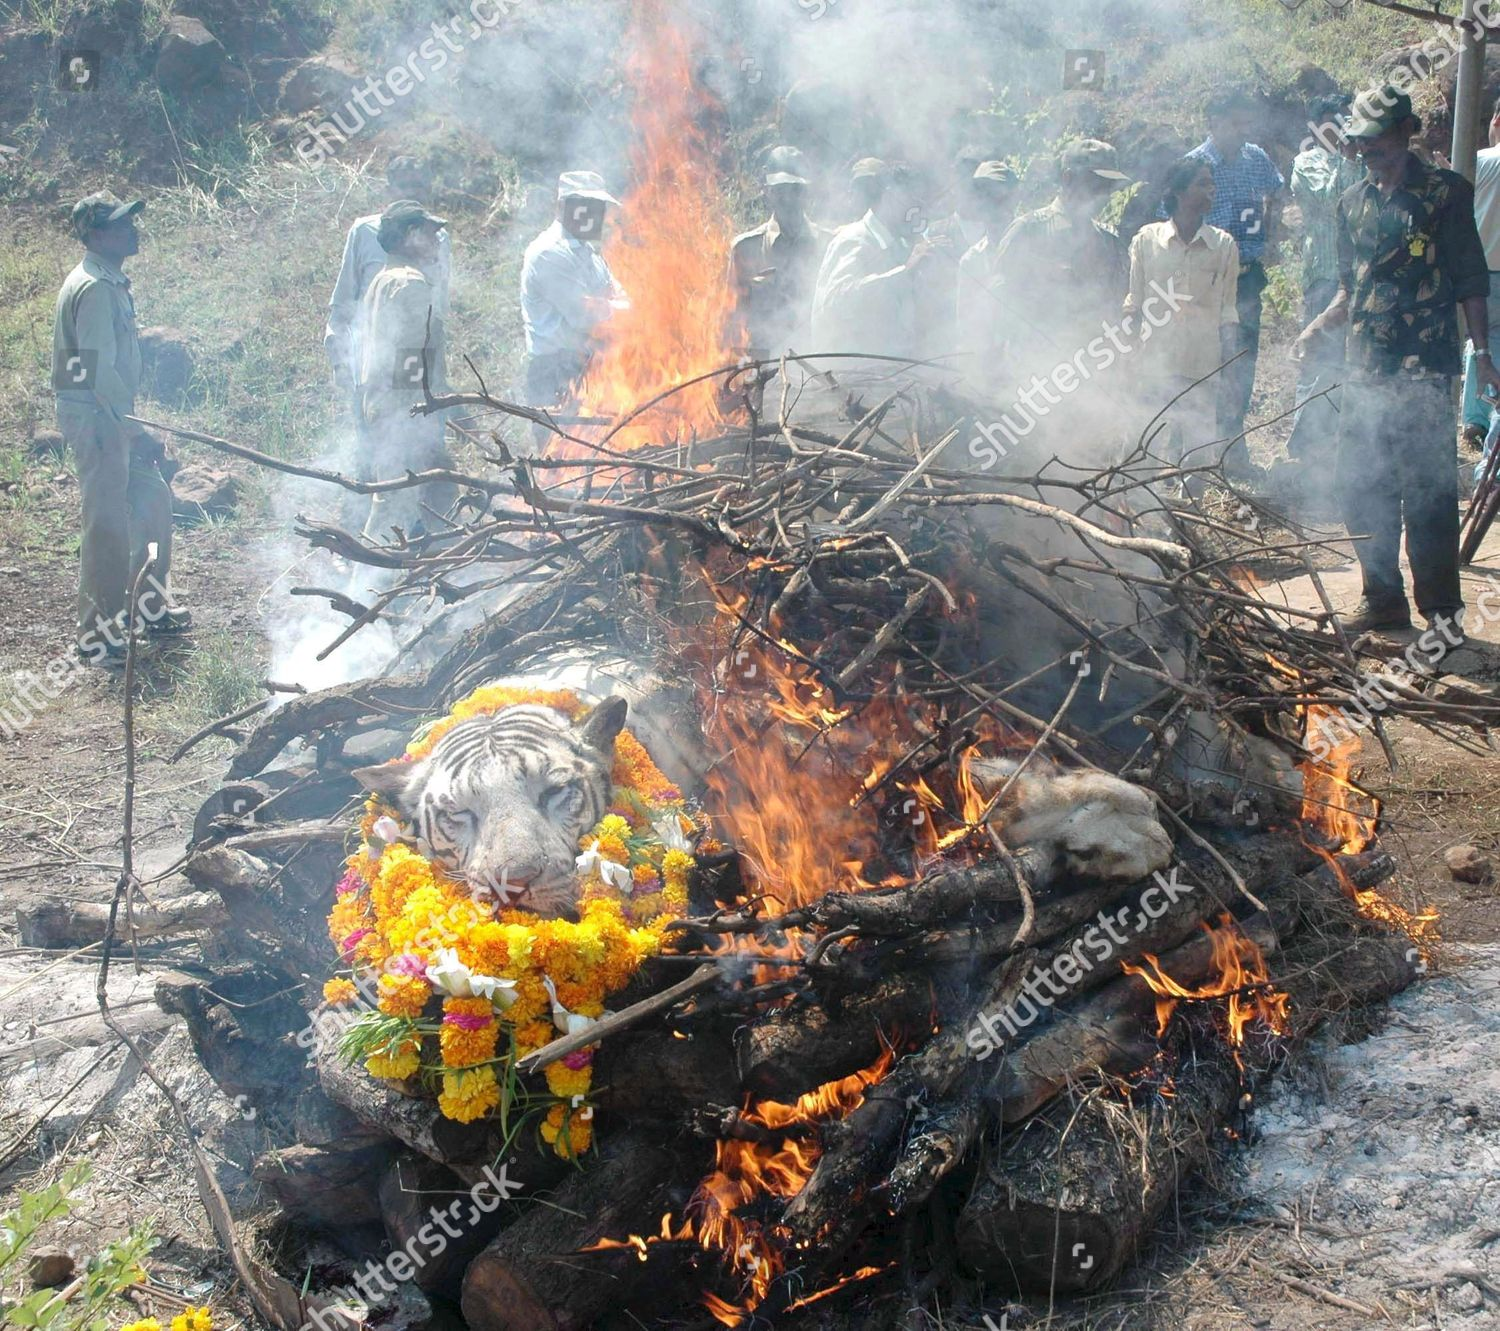 Indian Forest Officials Stand Behind Funeral Pyre Editorial